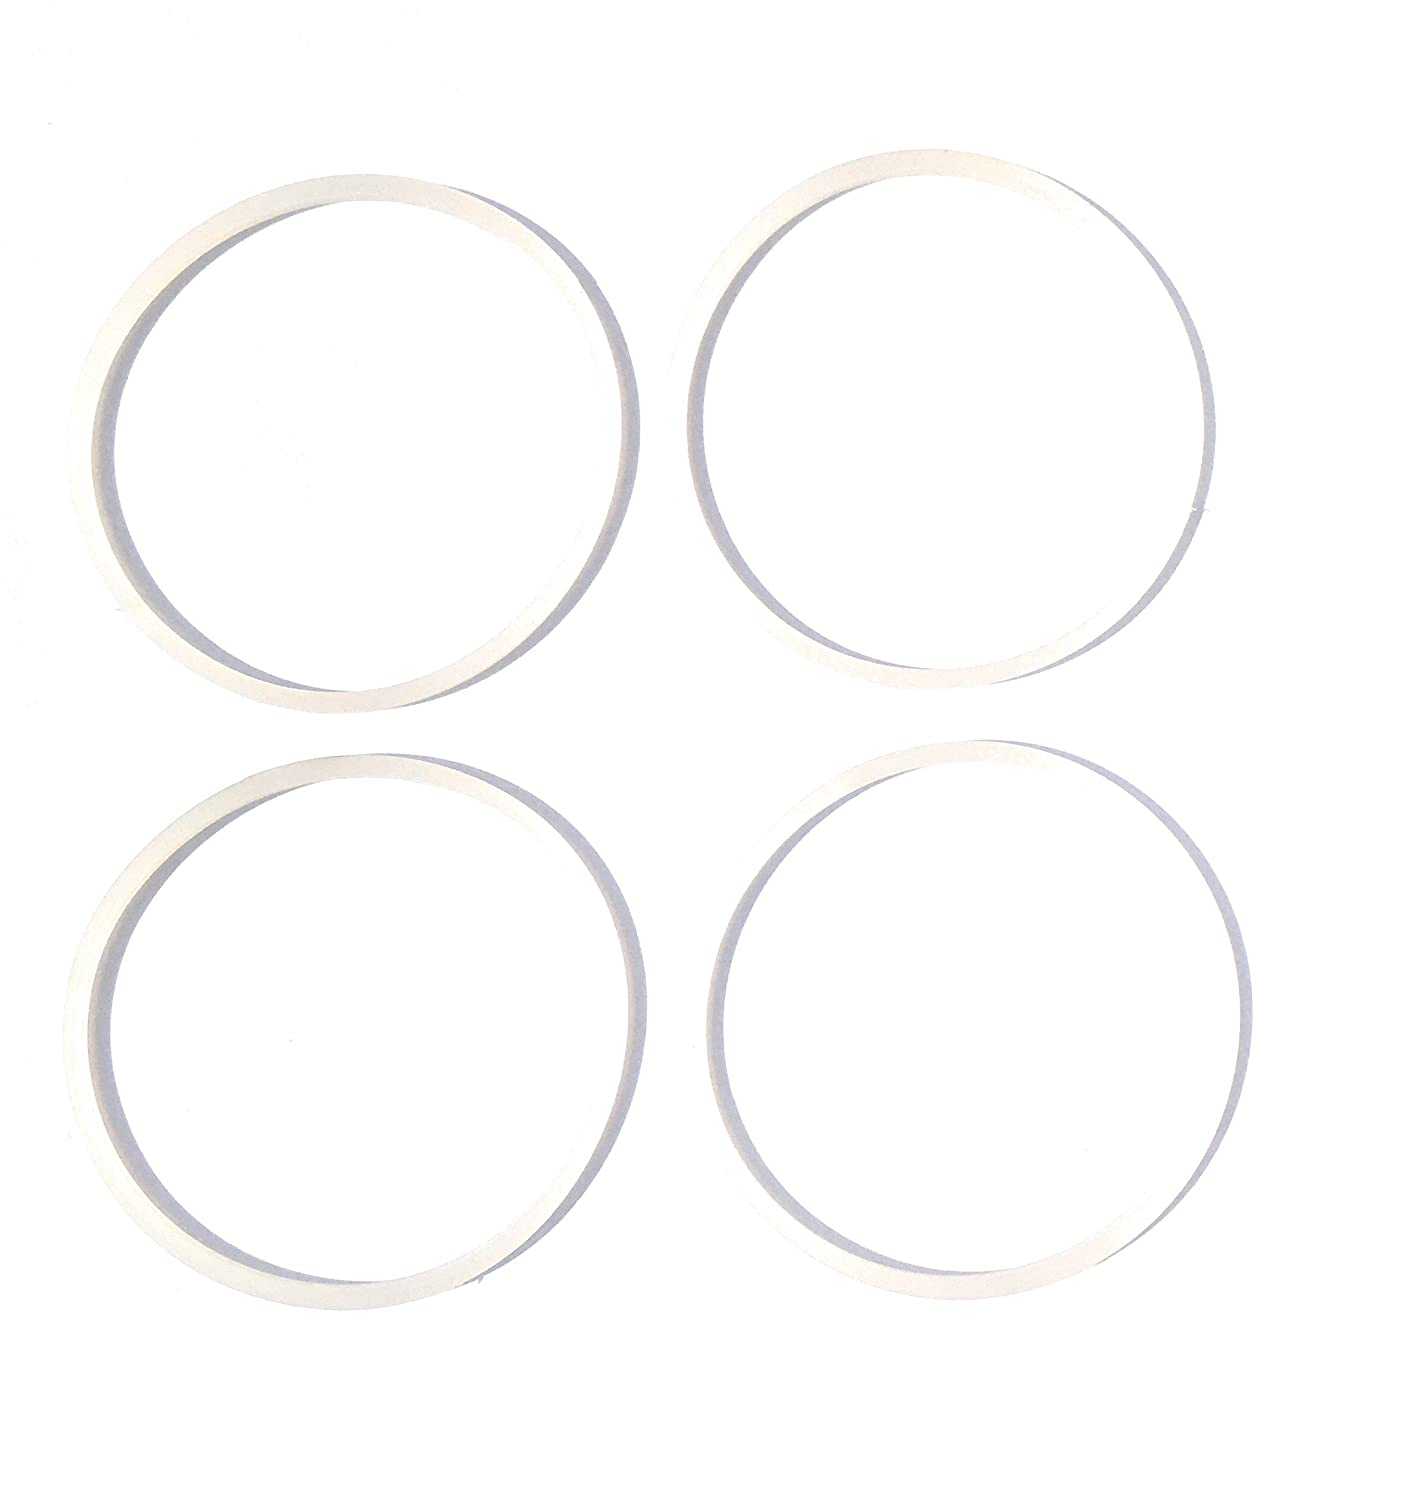 4 Replacement Gaskets compatible with Original Magic Bullet